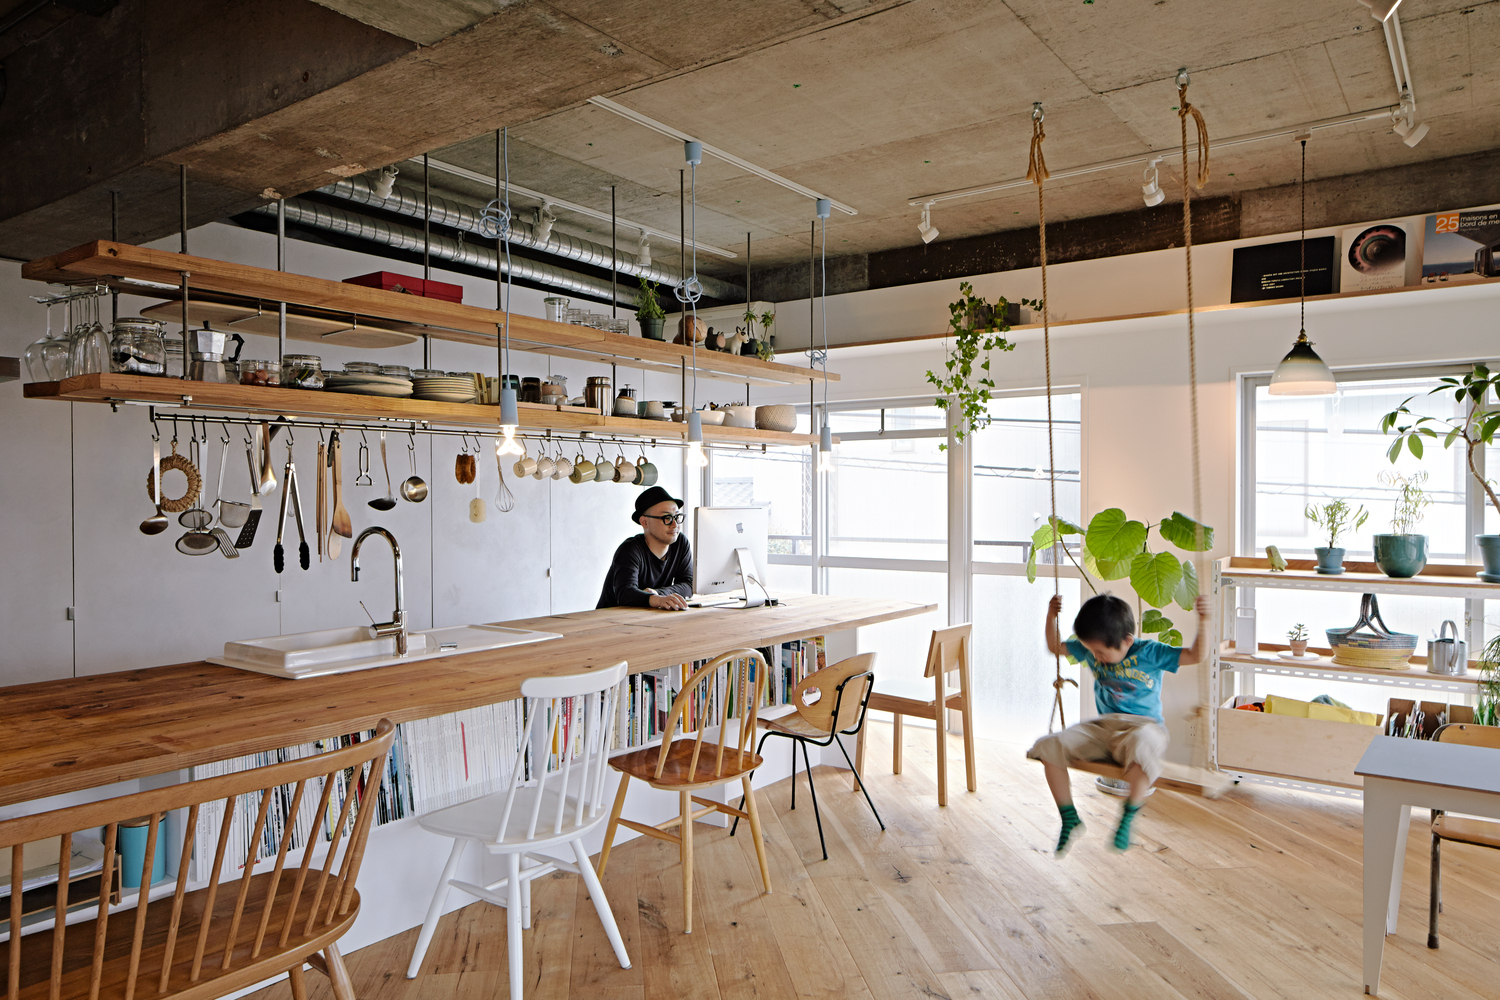 Kitchens that Double As Dining Rooms: Architectural Design ...